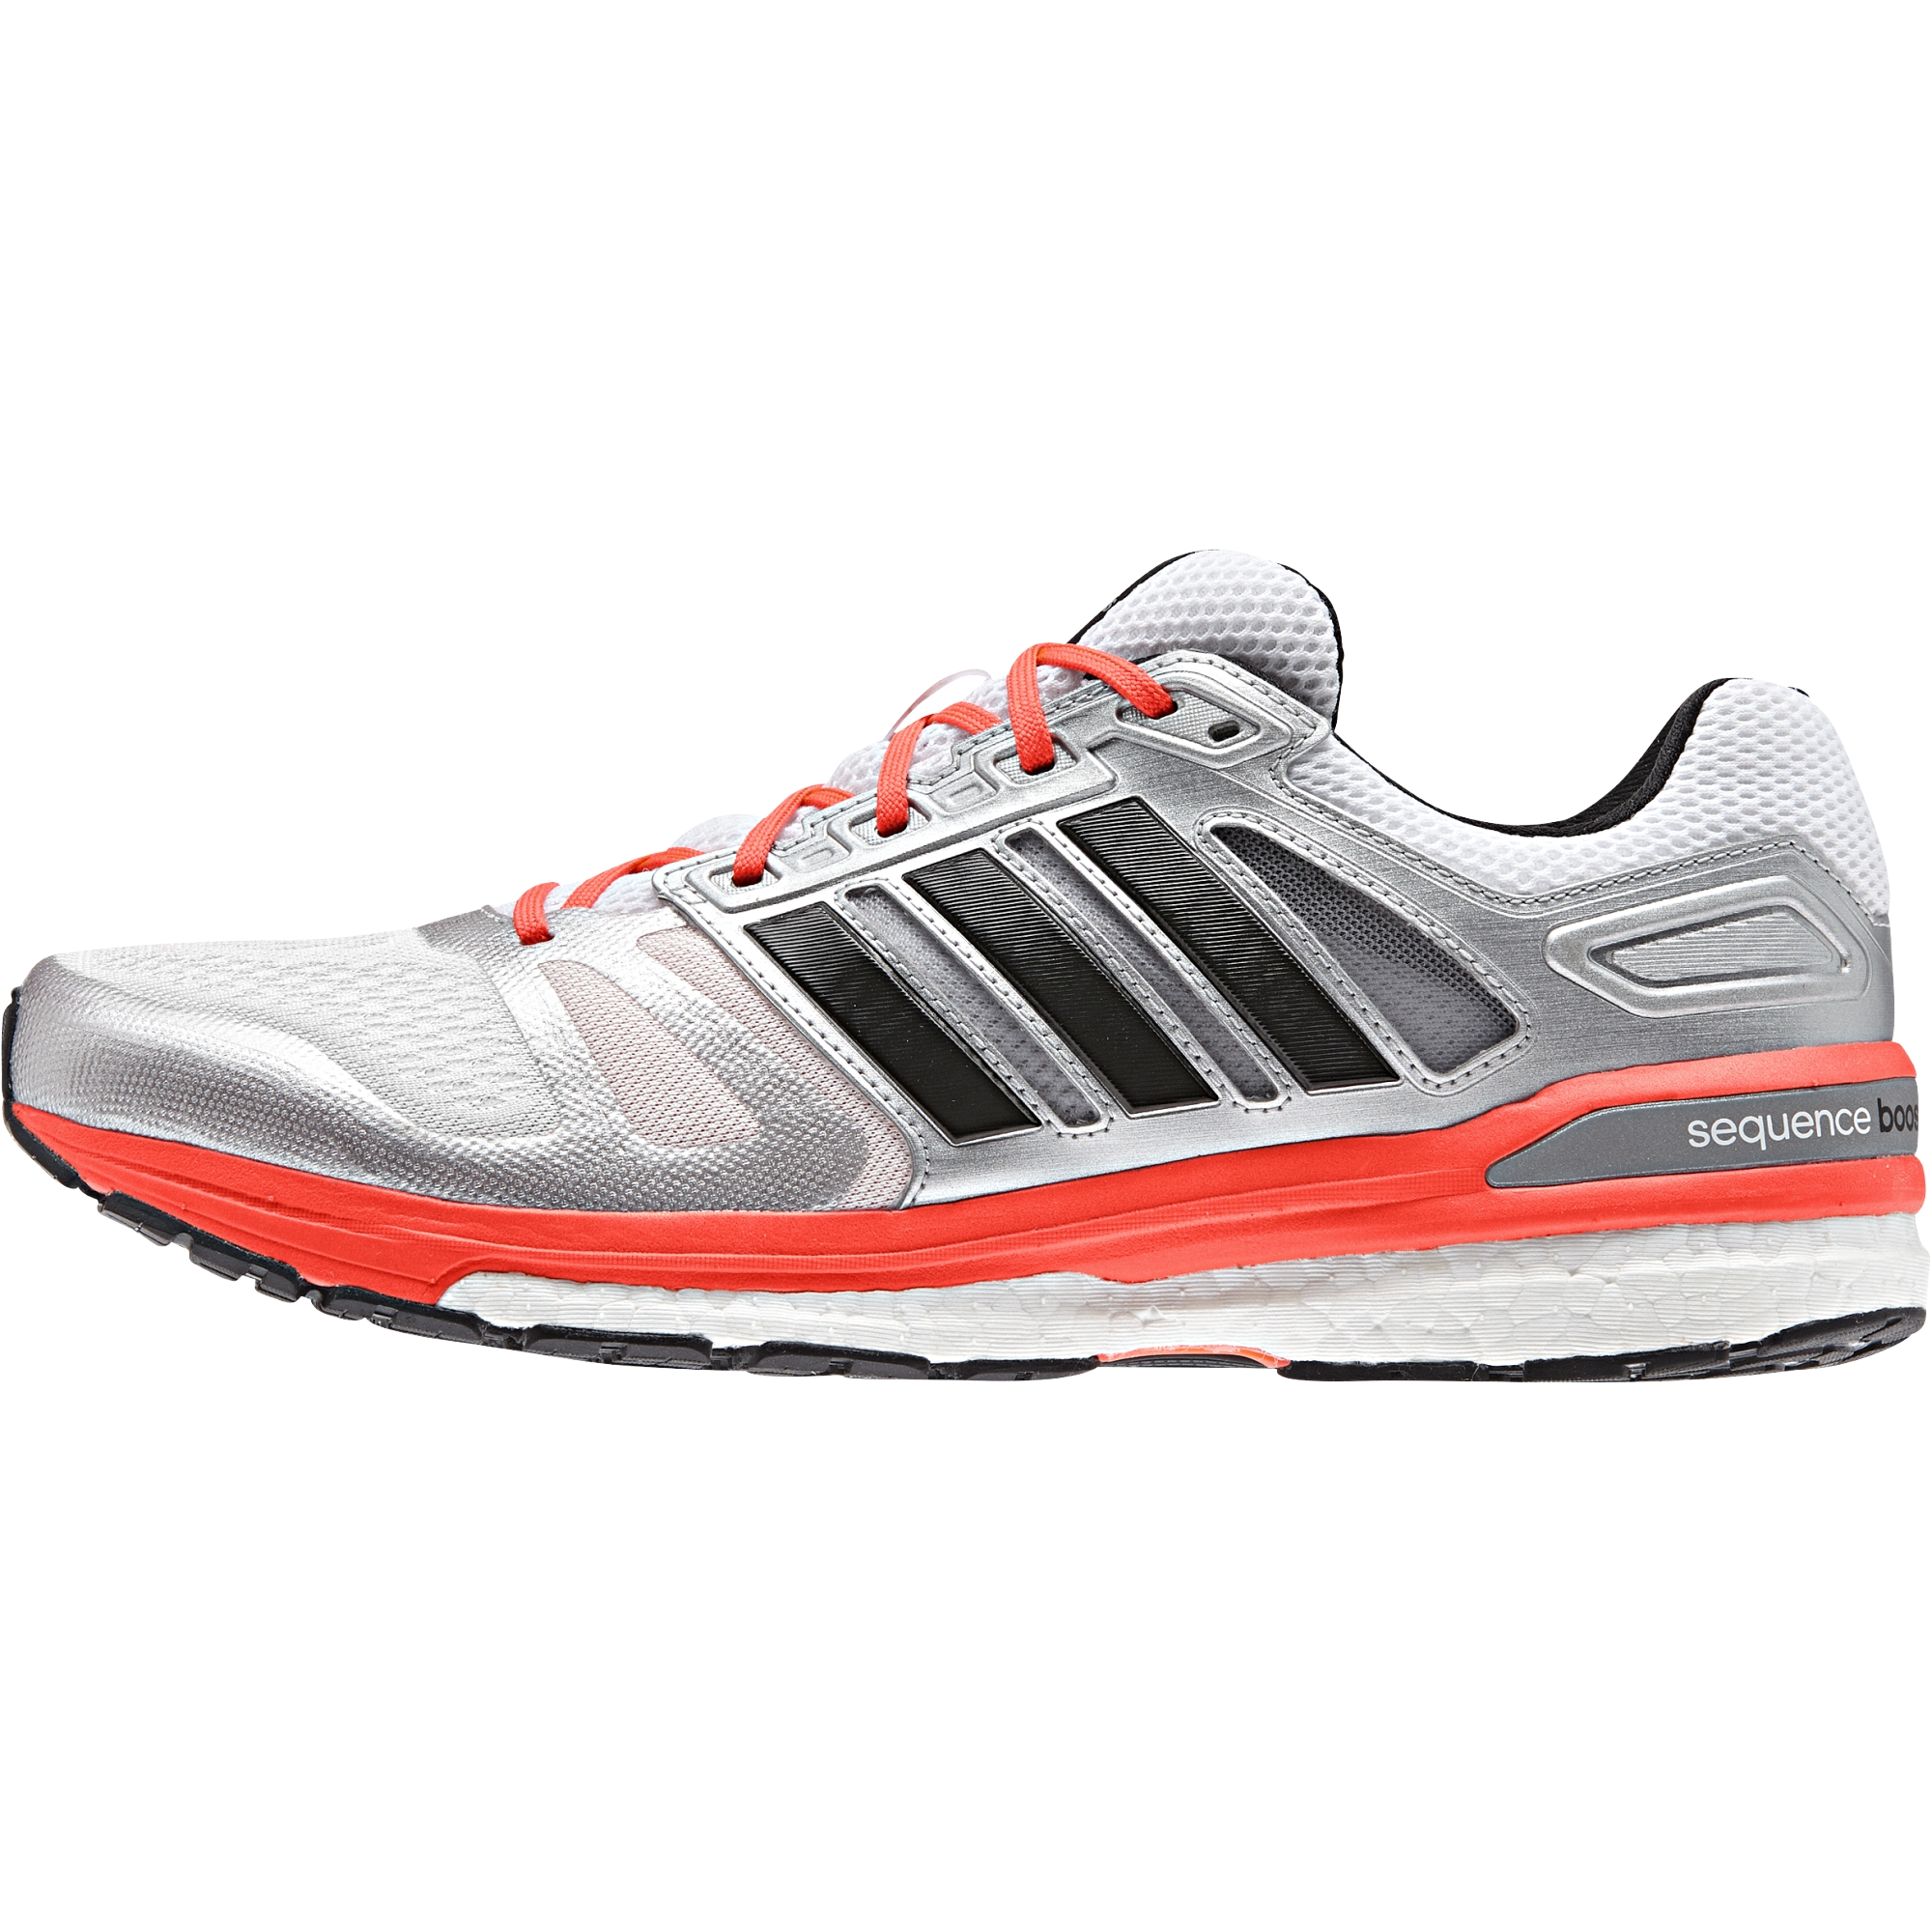 adidas boost stability shoe